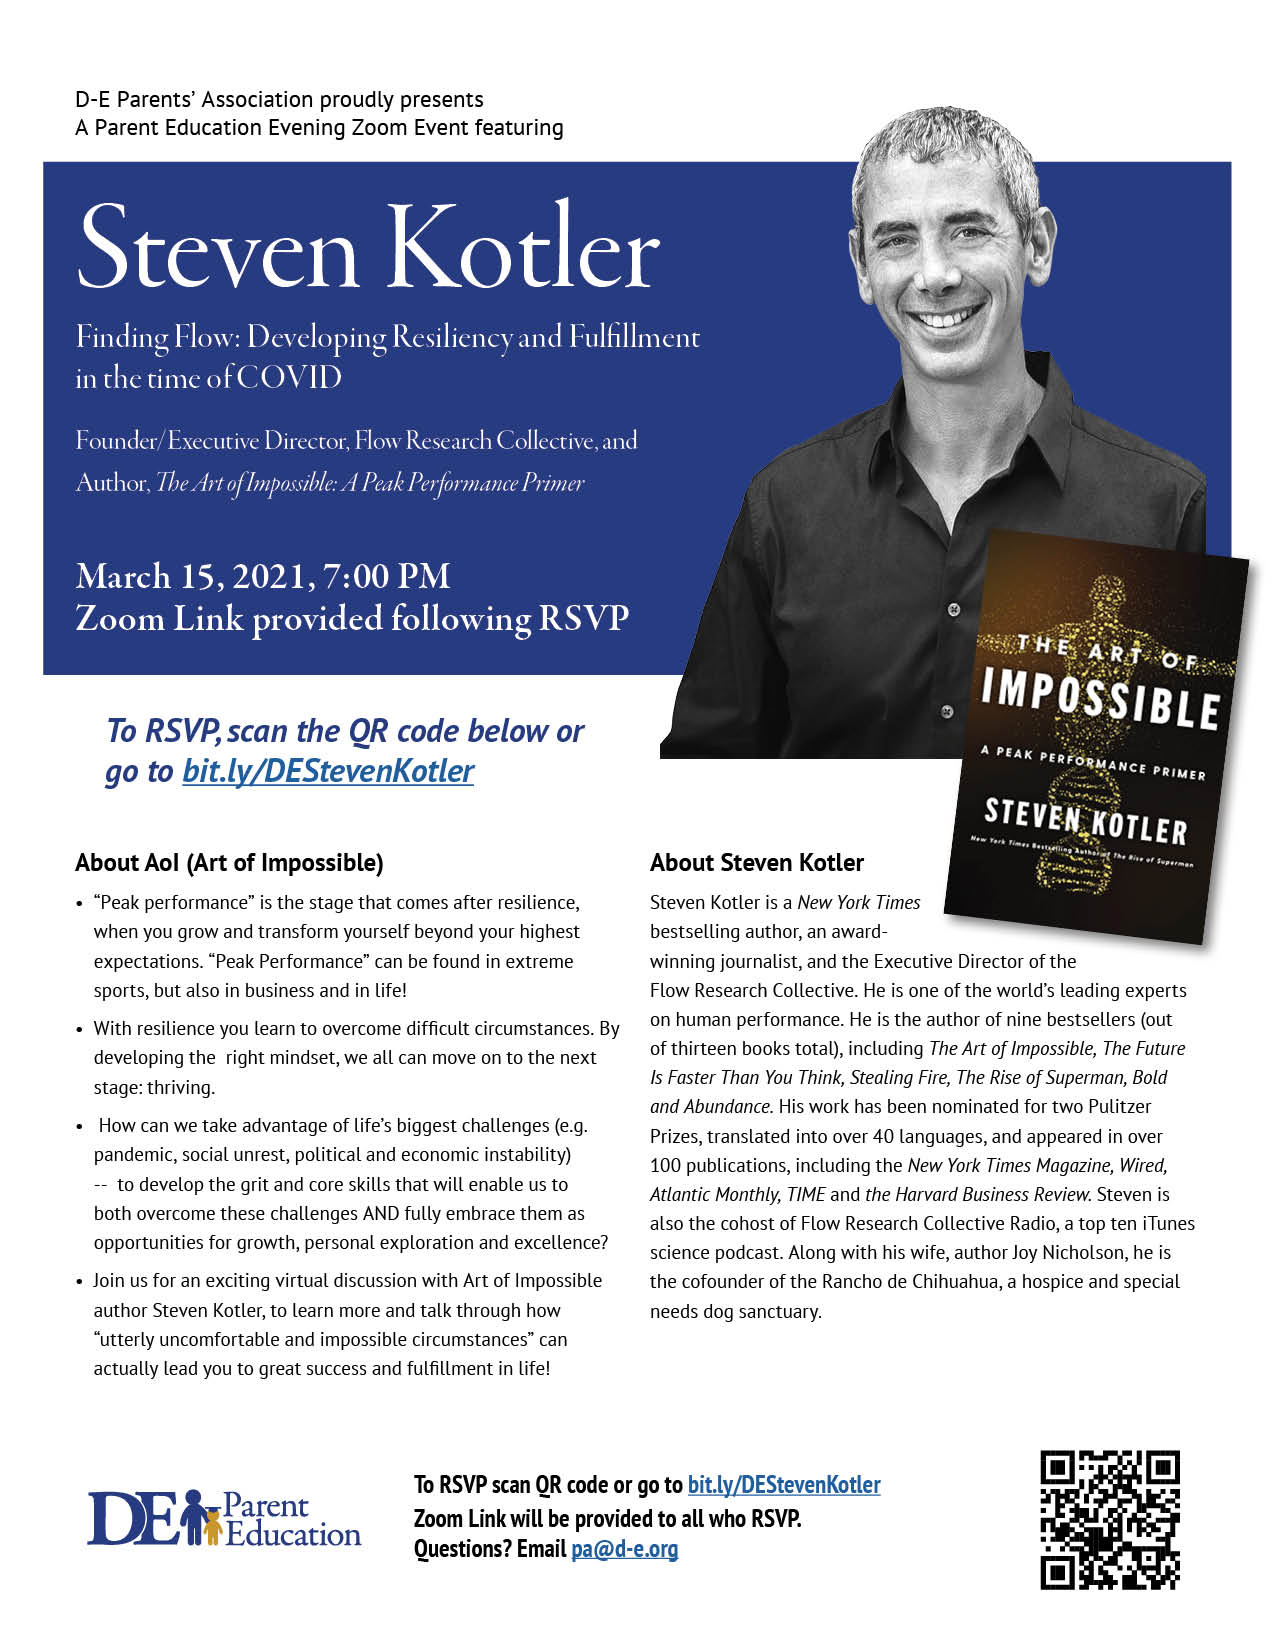 Steven Kotler – Finding Flow: Developing Resiliency and Fulfillment in the time of COVID